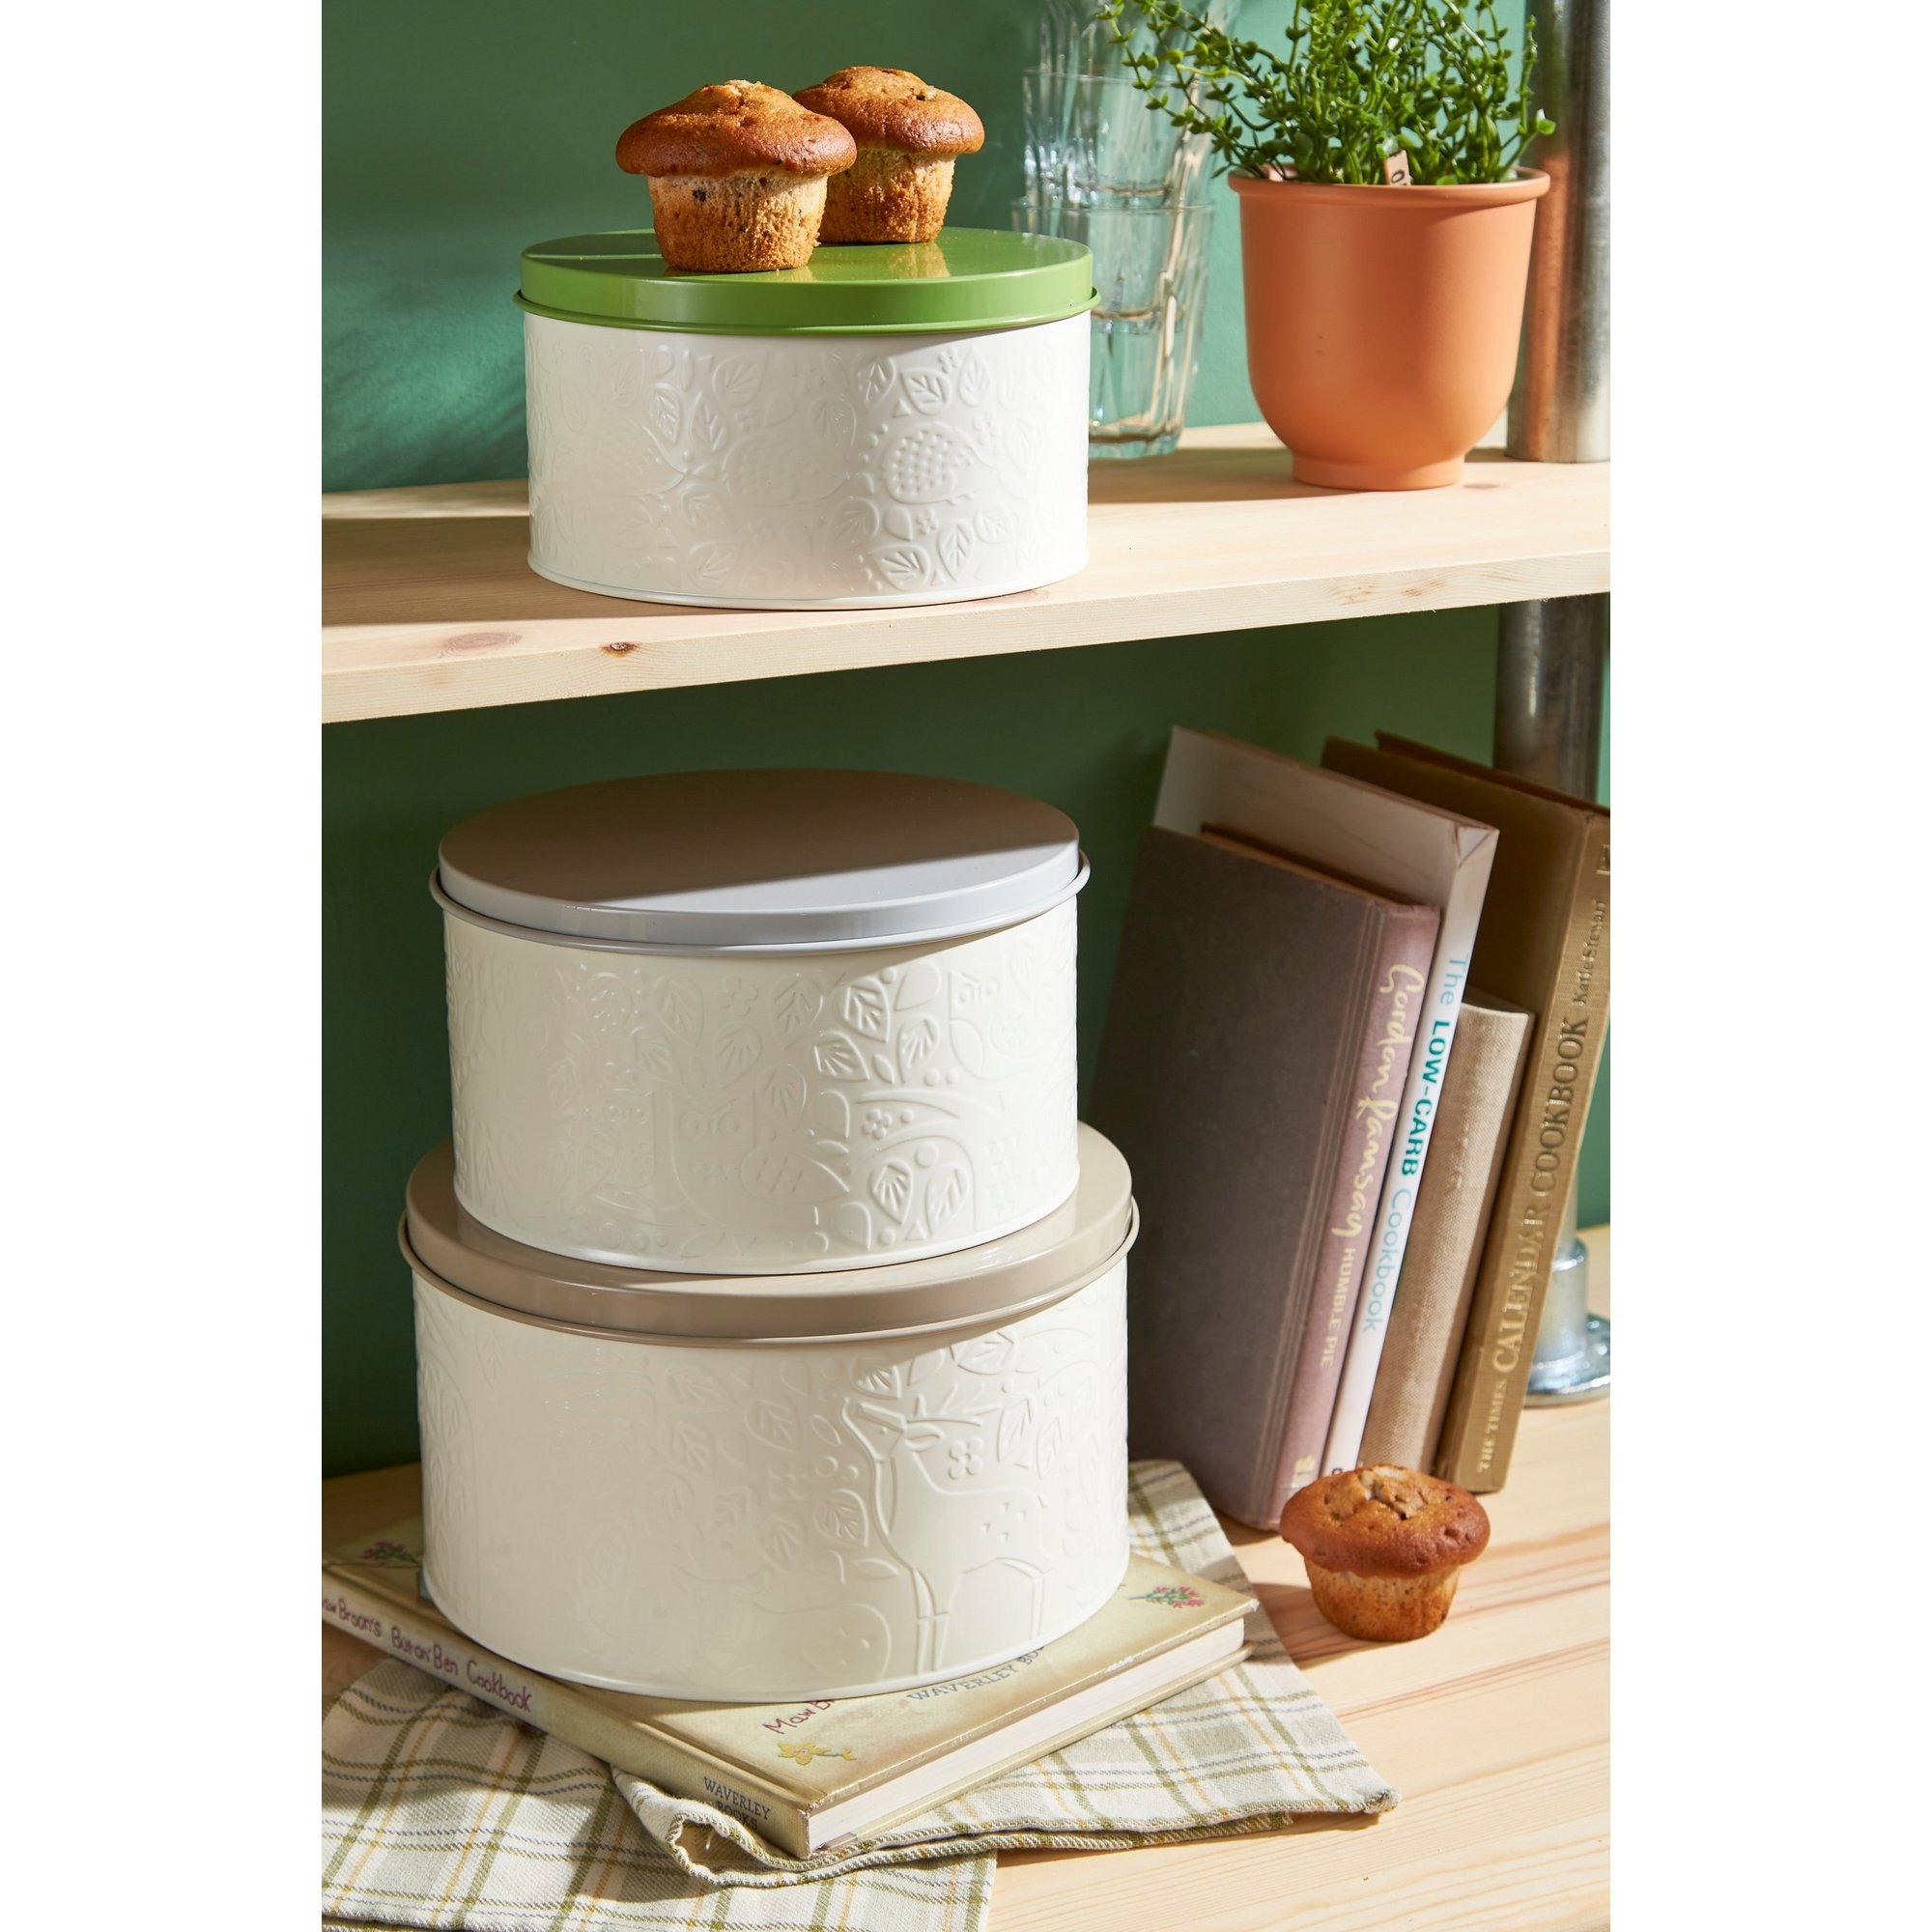 Image of Mason Cash In The Forest Set of 3 Cake Tins